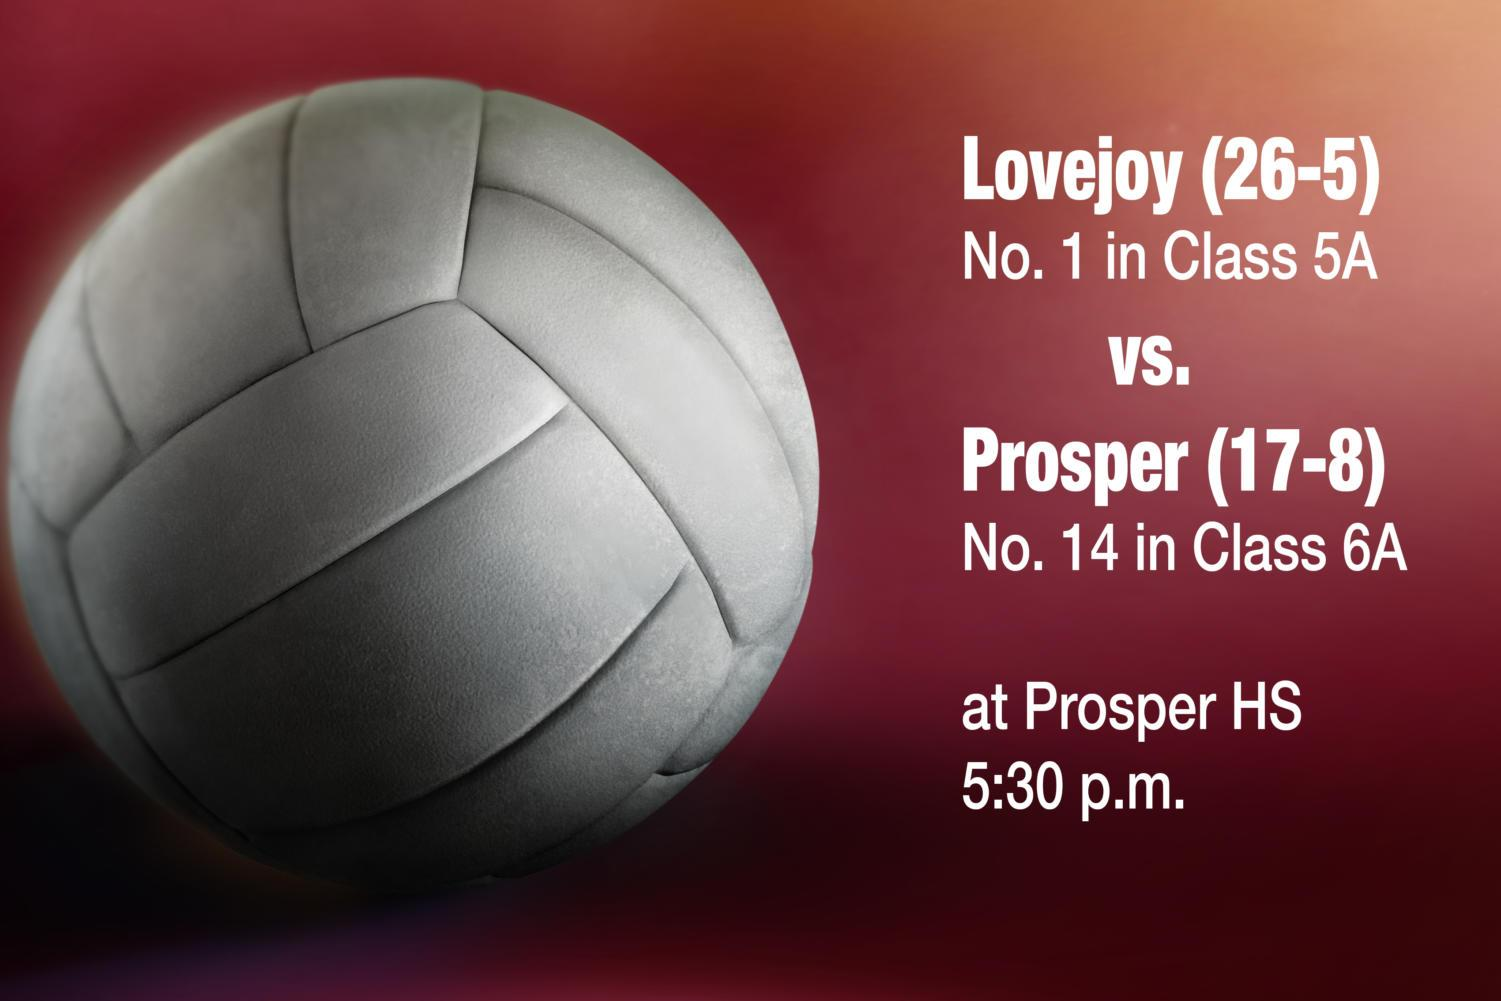 Off to strong start in the early season, the Leopard volleyball team travels to Prosper to face the team which eliminated Lovejoy from playoffs last season.